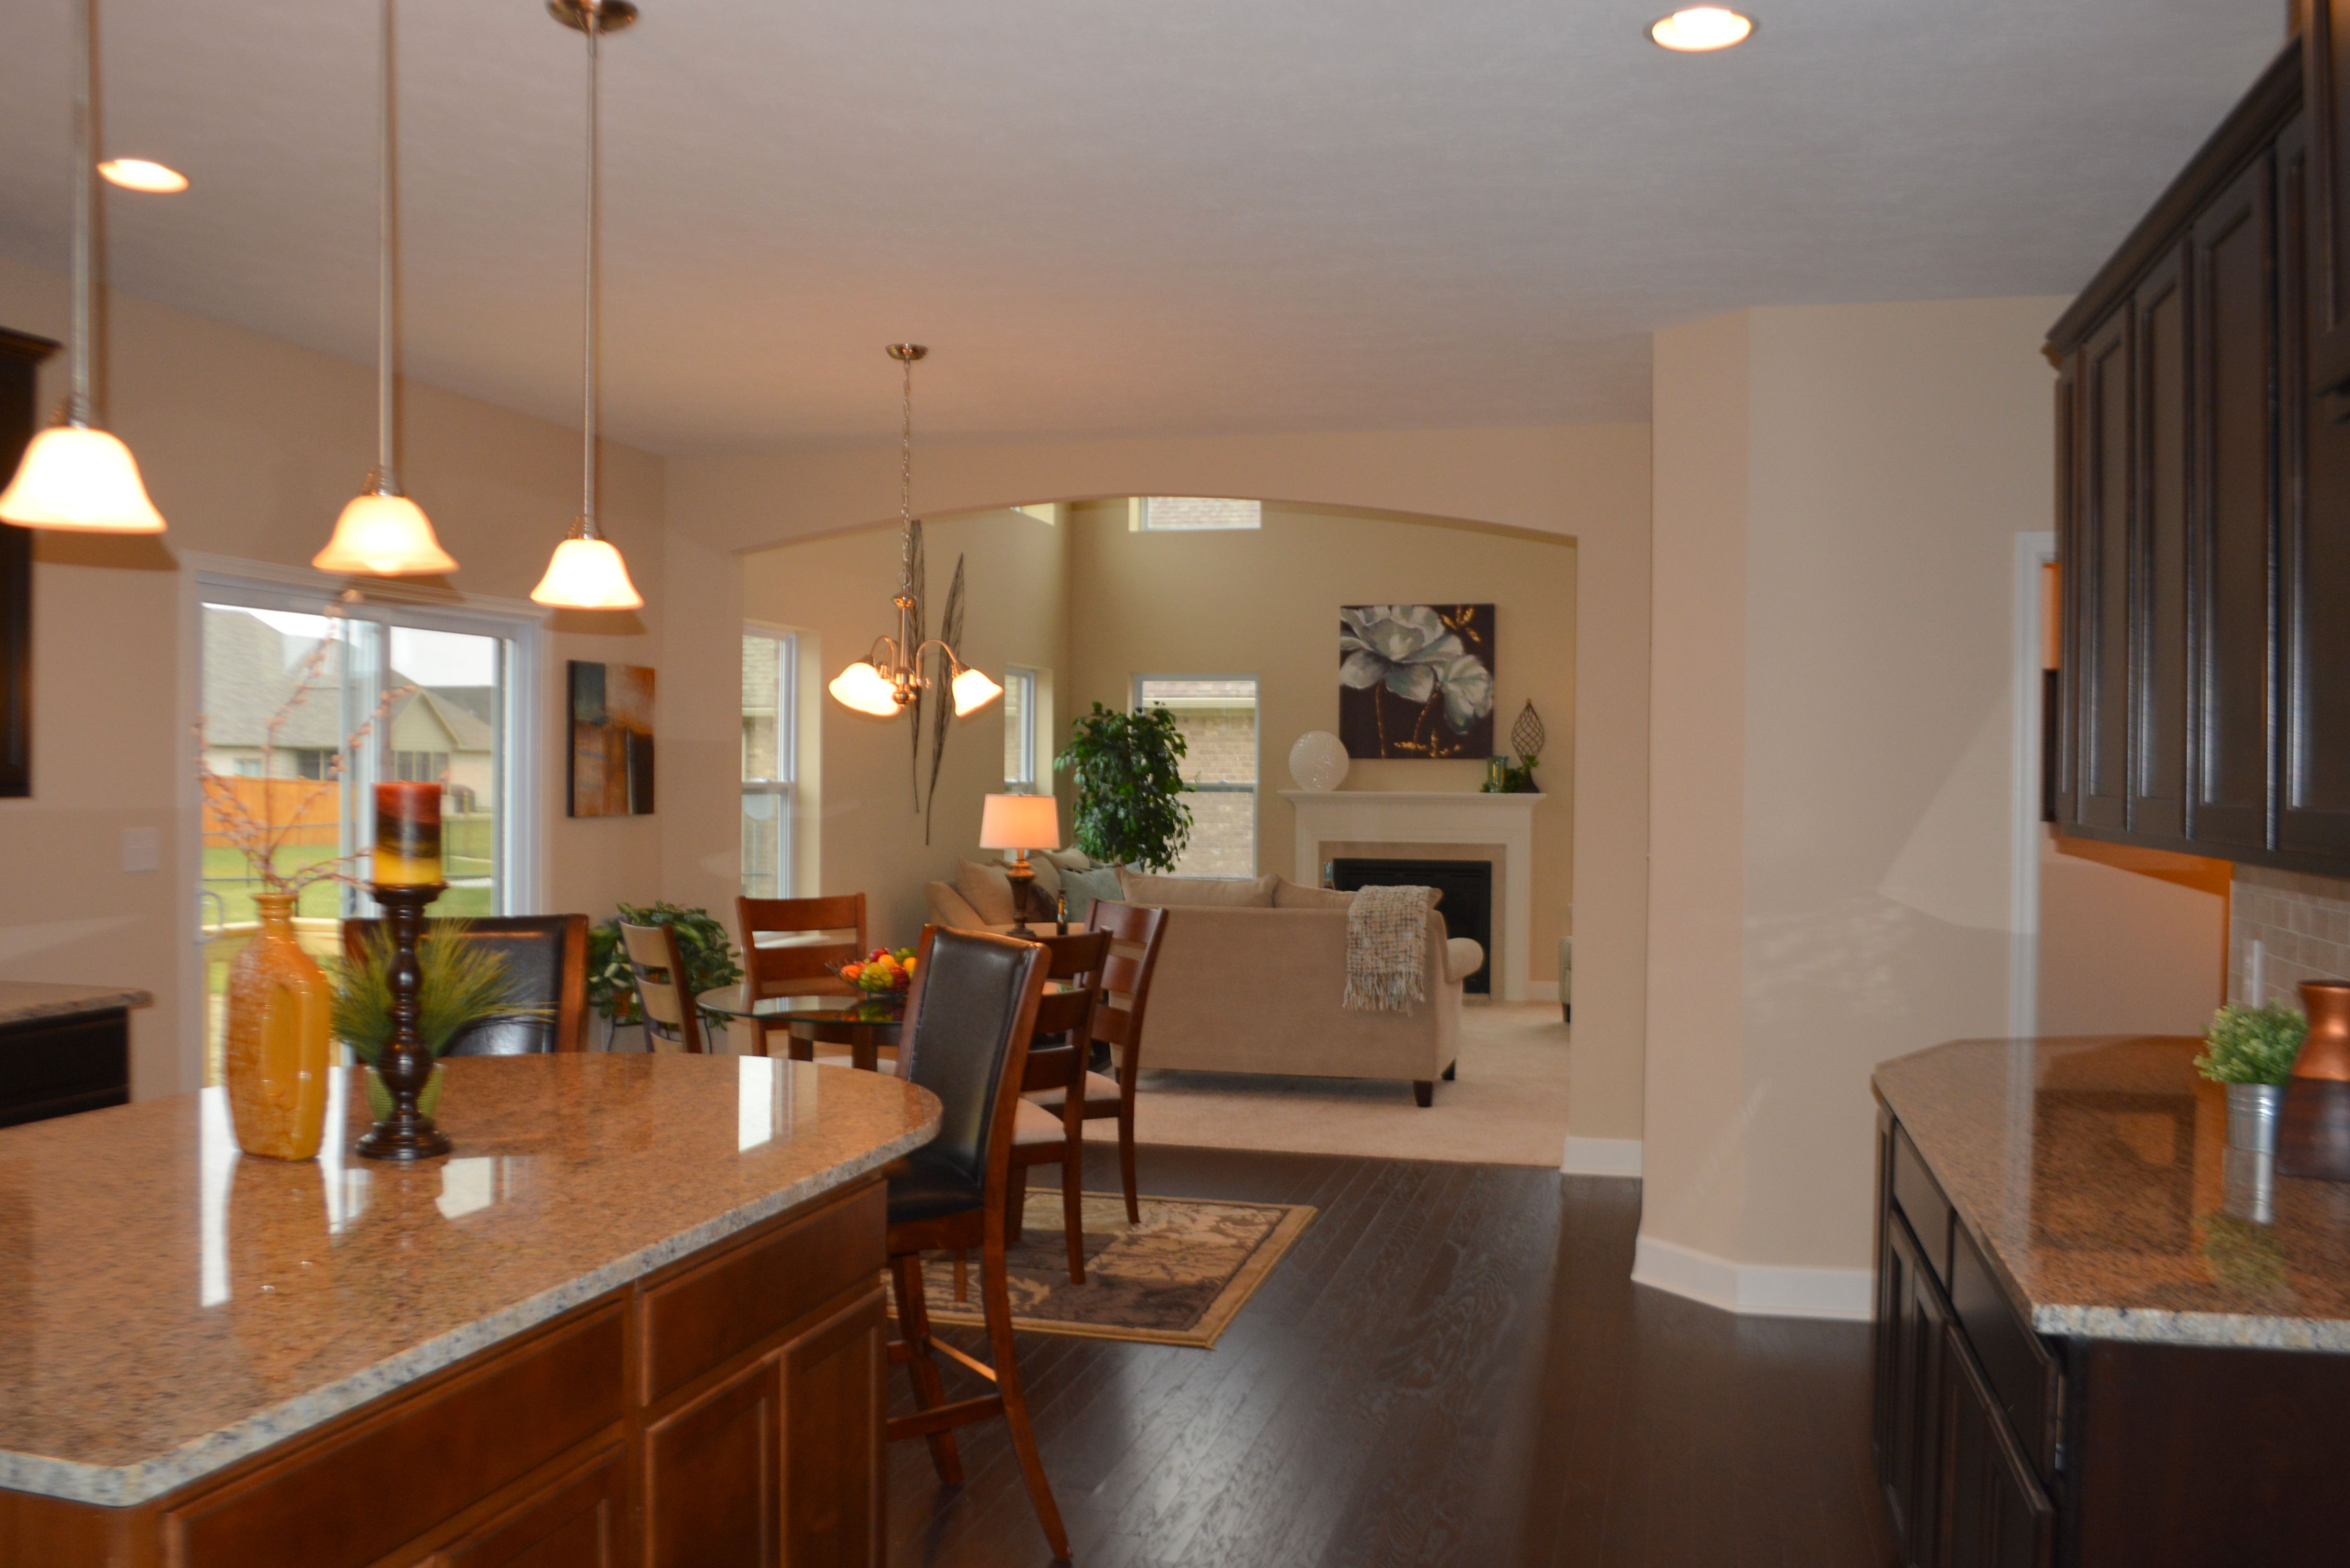 Home Matters, home staging Indianapolis | Home staging ...